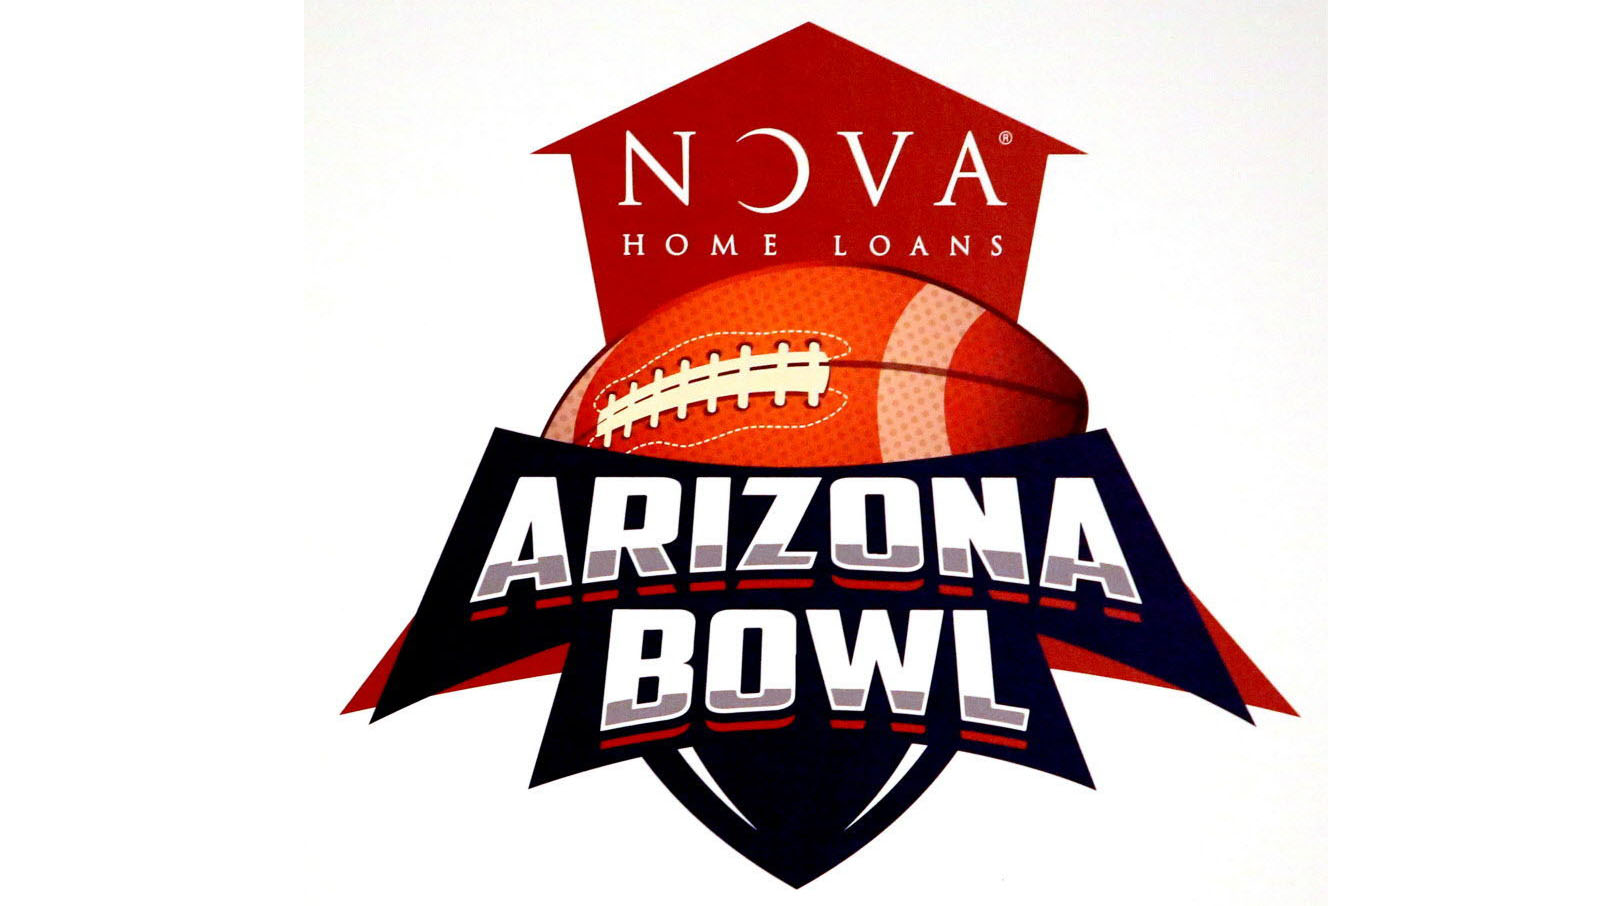 NOVA Arizona Bowl